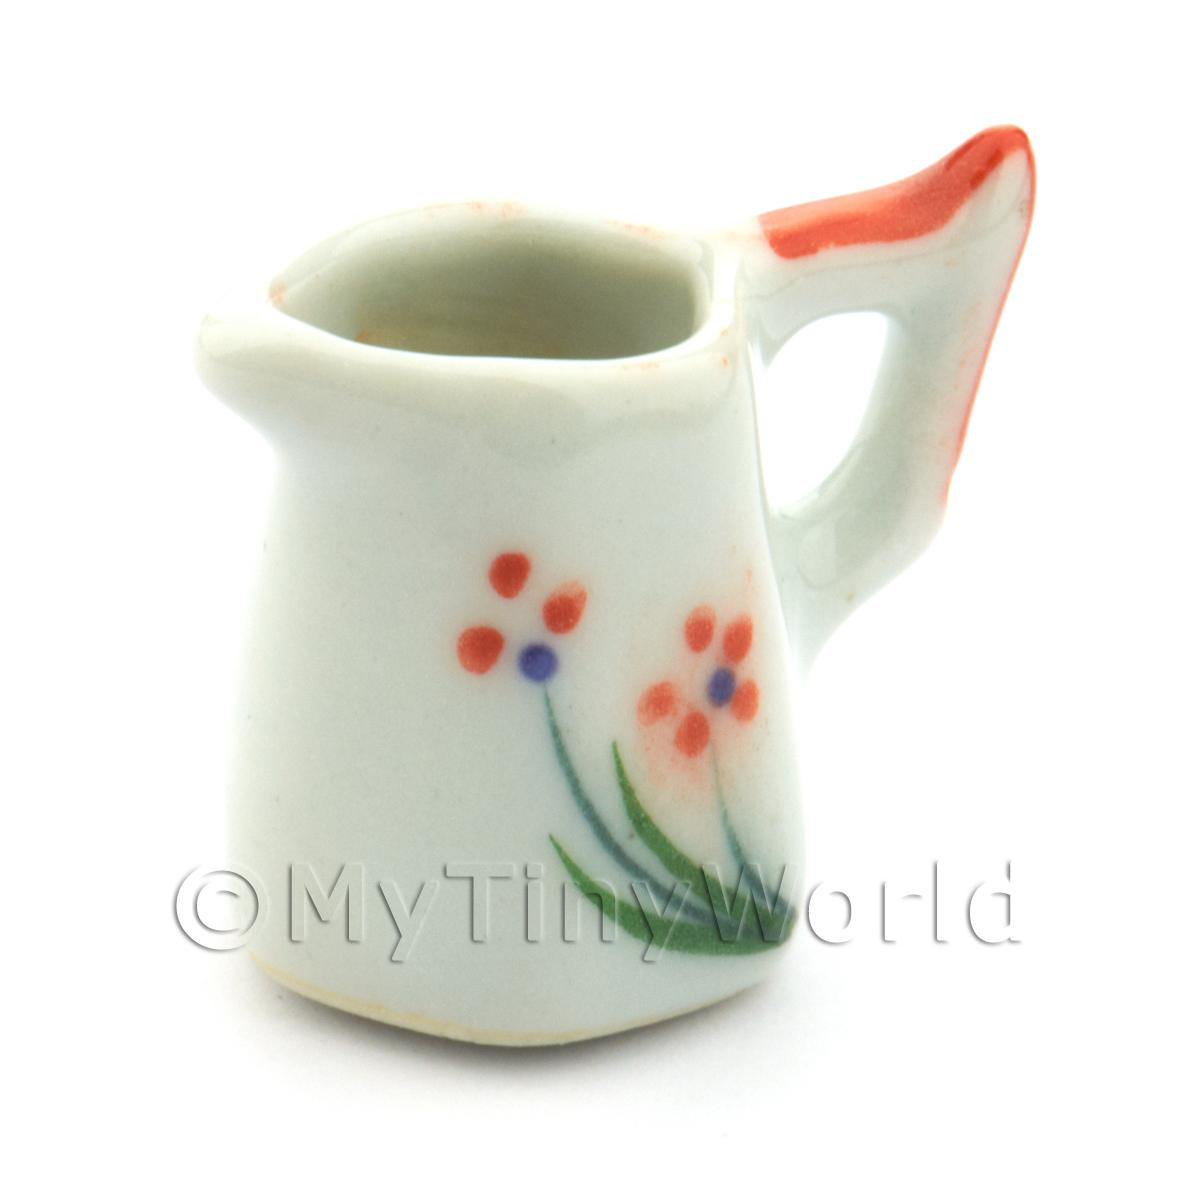 Dolls House Miniature Orange Flower Design Ceramic Hexagonal Jug